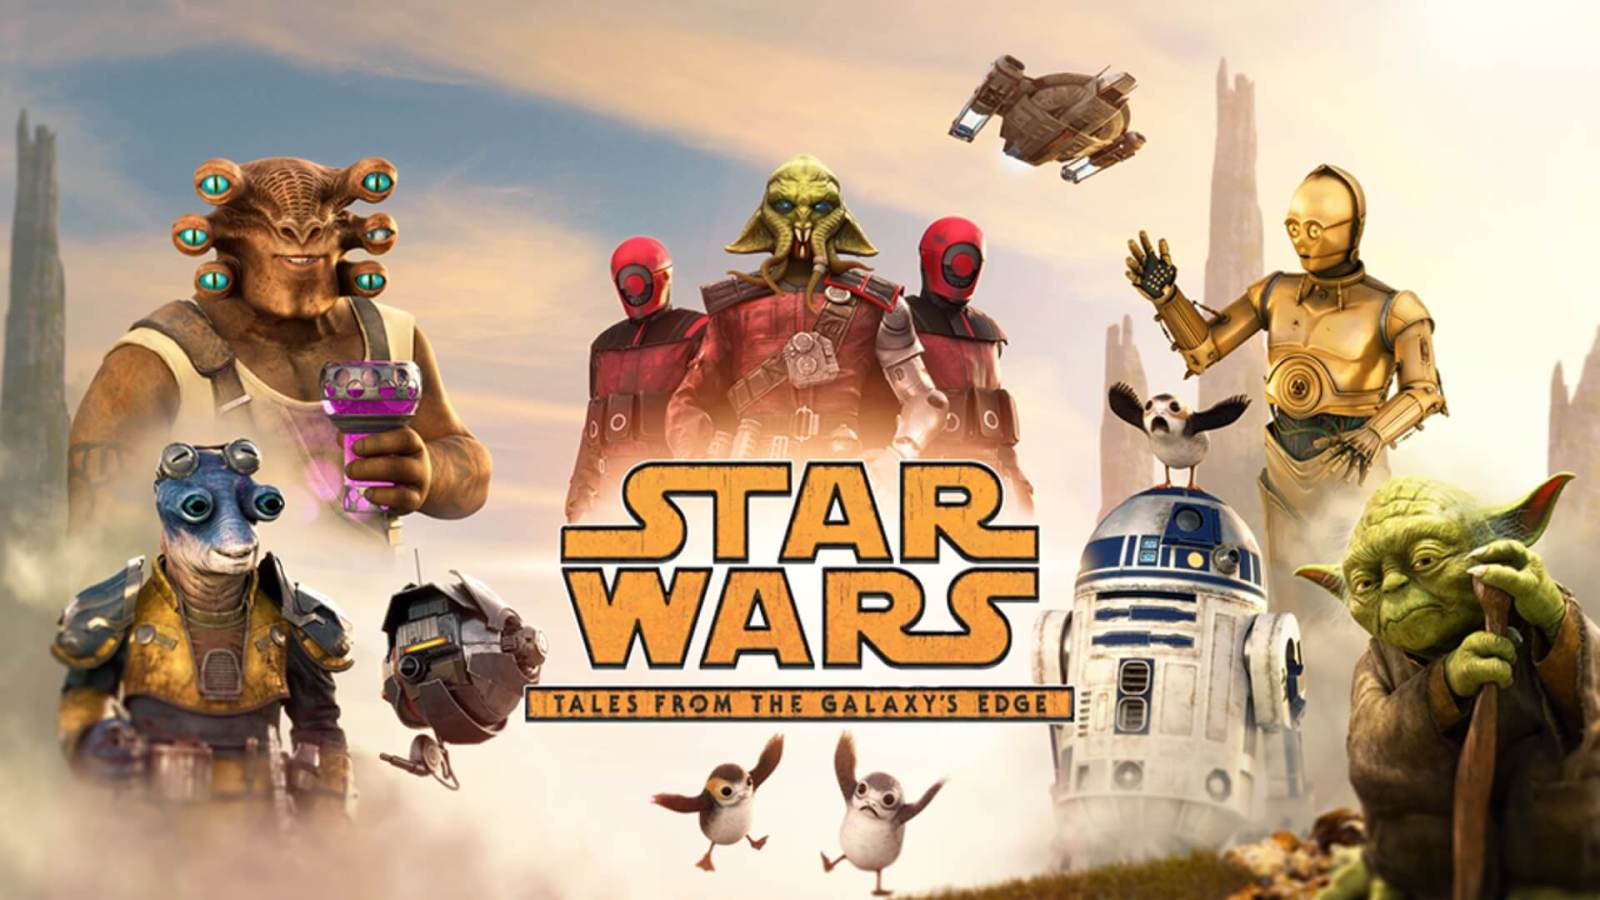 Star Wars: Tales from the Galaxy's Edge will release on Oculus Quest on November 19